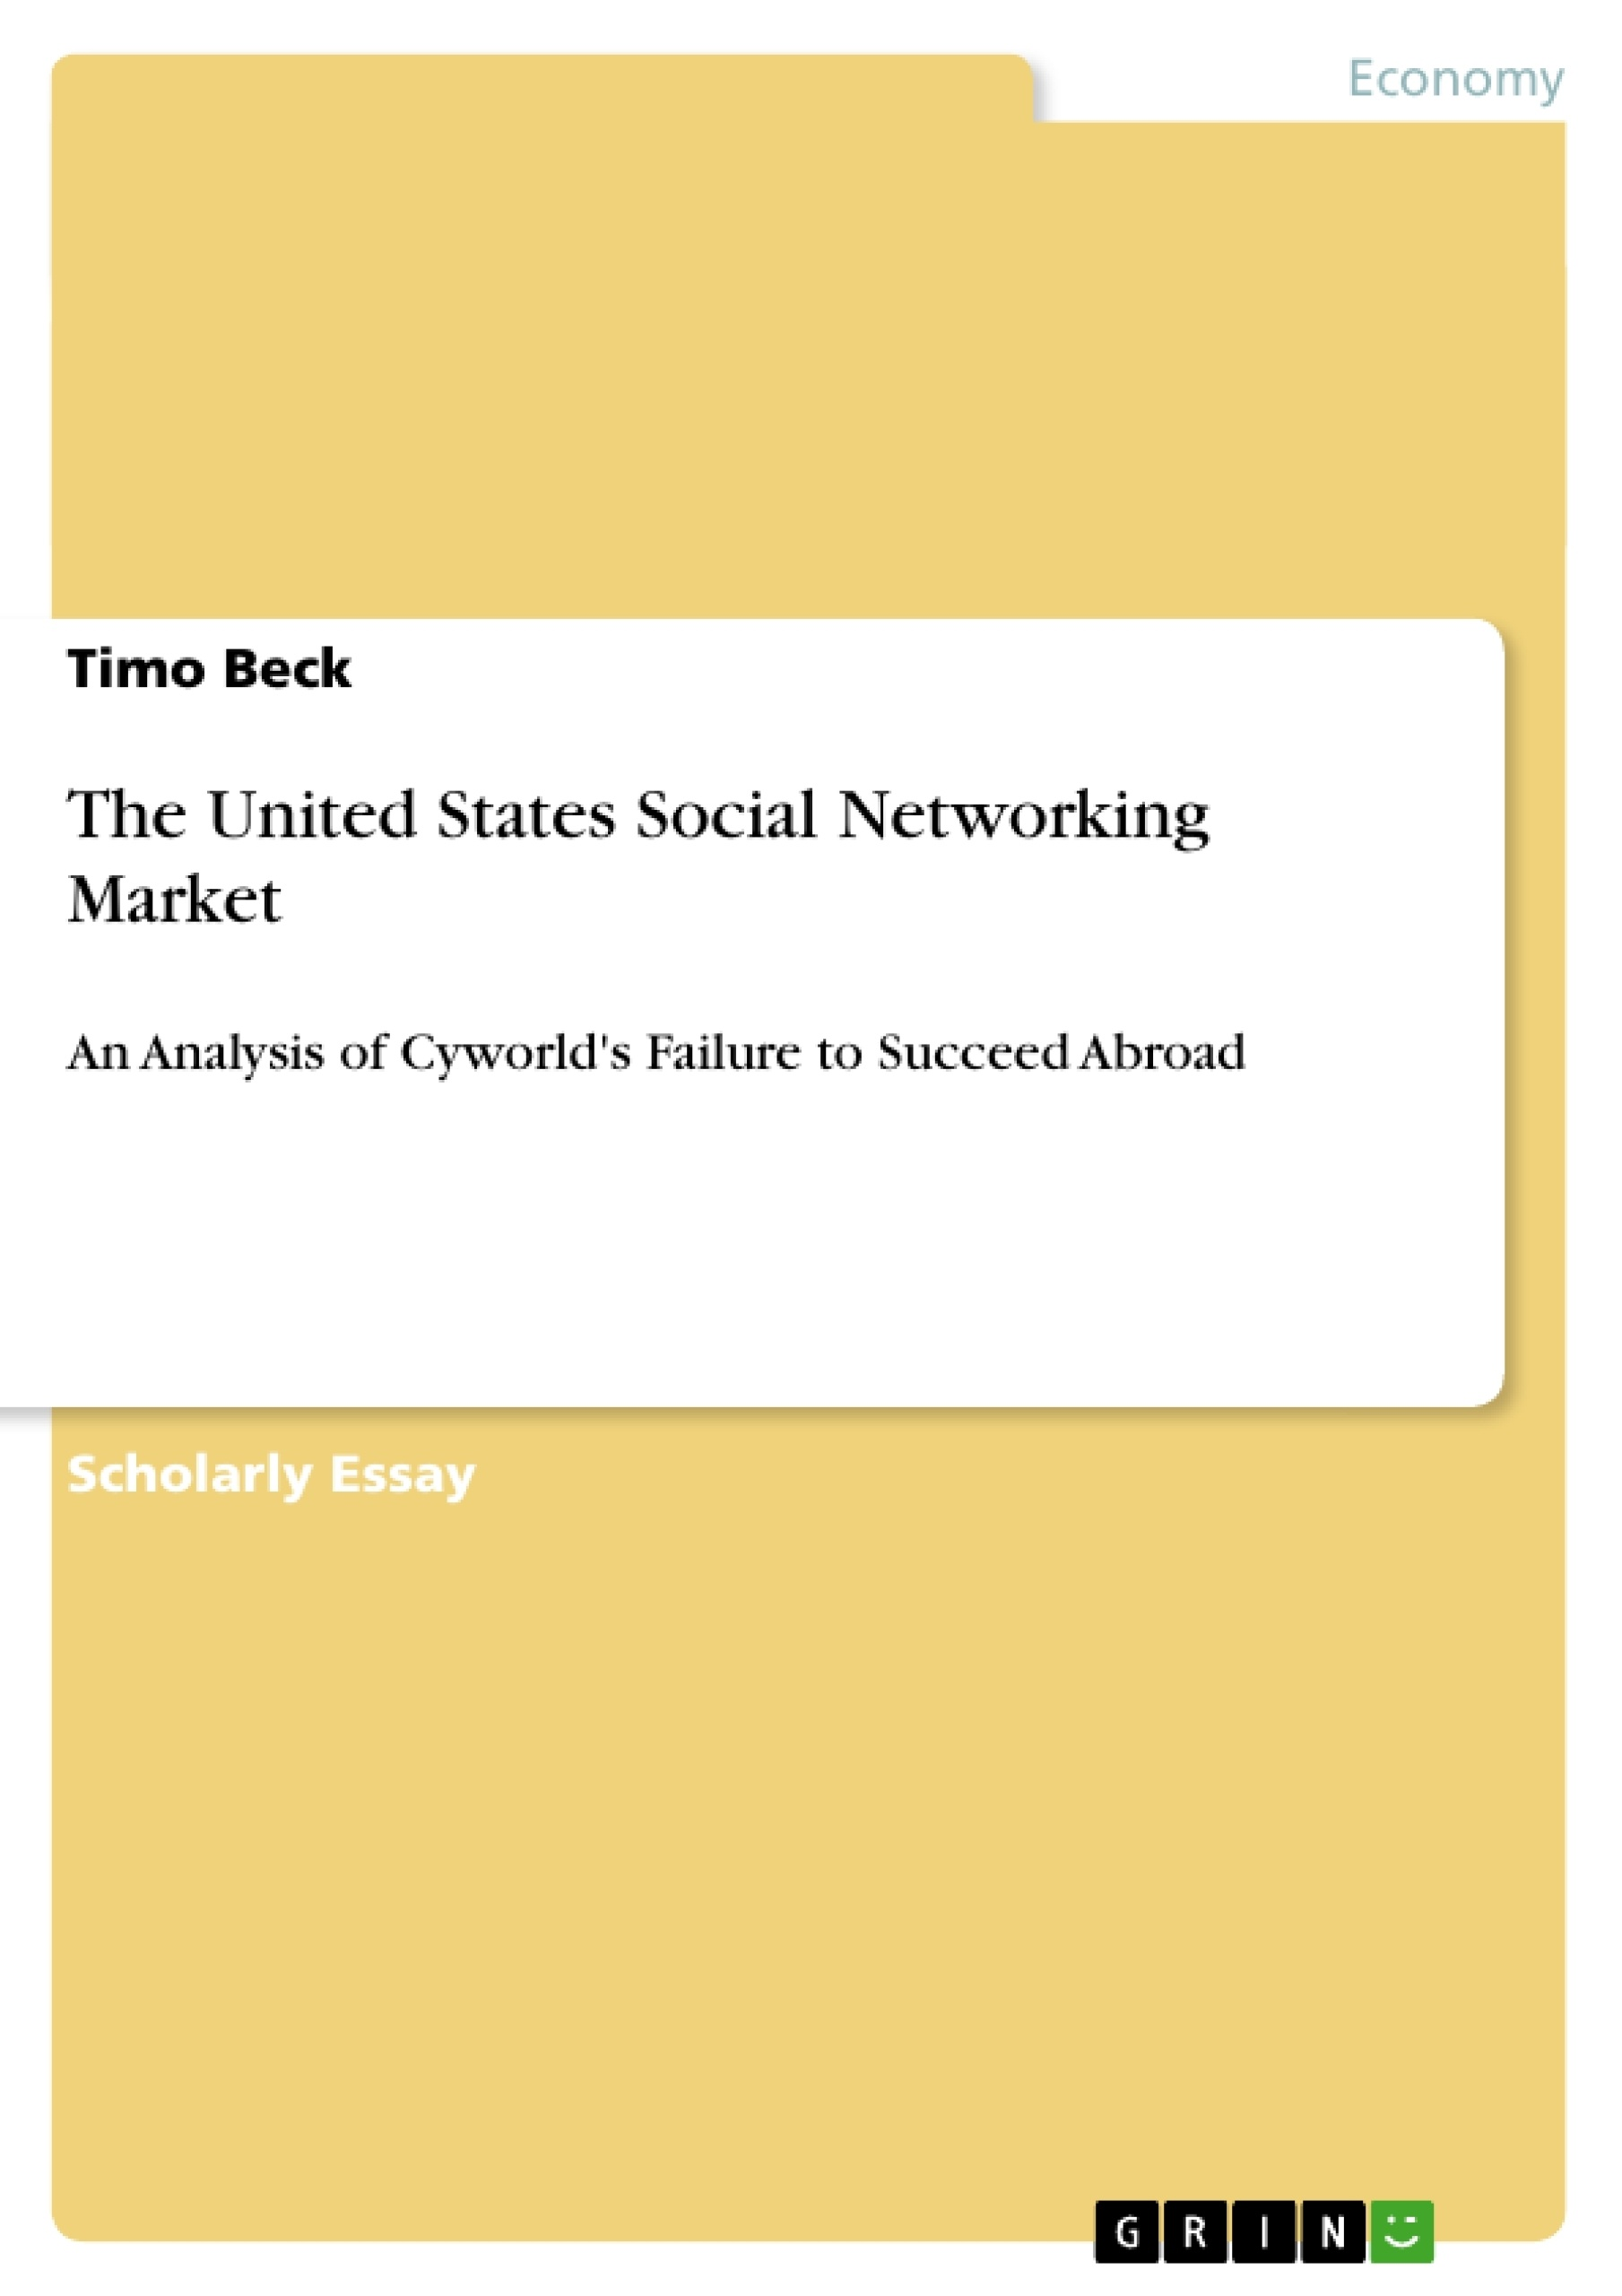 social networking master thesis Effects of social media on individual voting signature page we, the undersigned, certify that we read the project or thesis and approve it as.